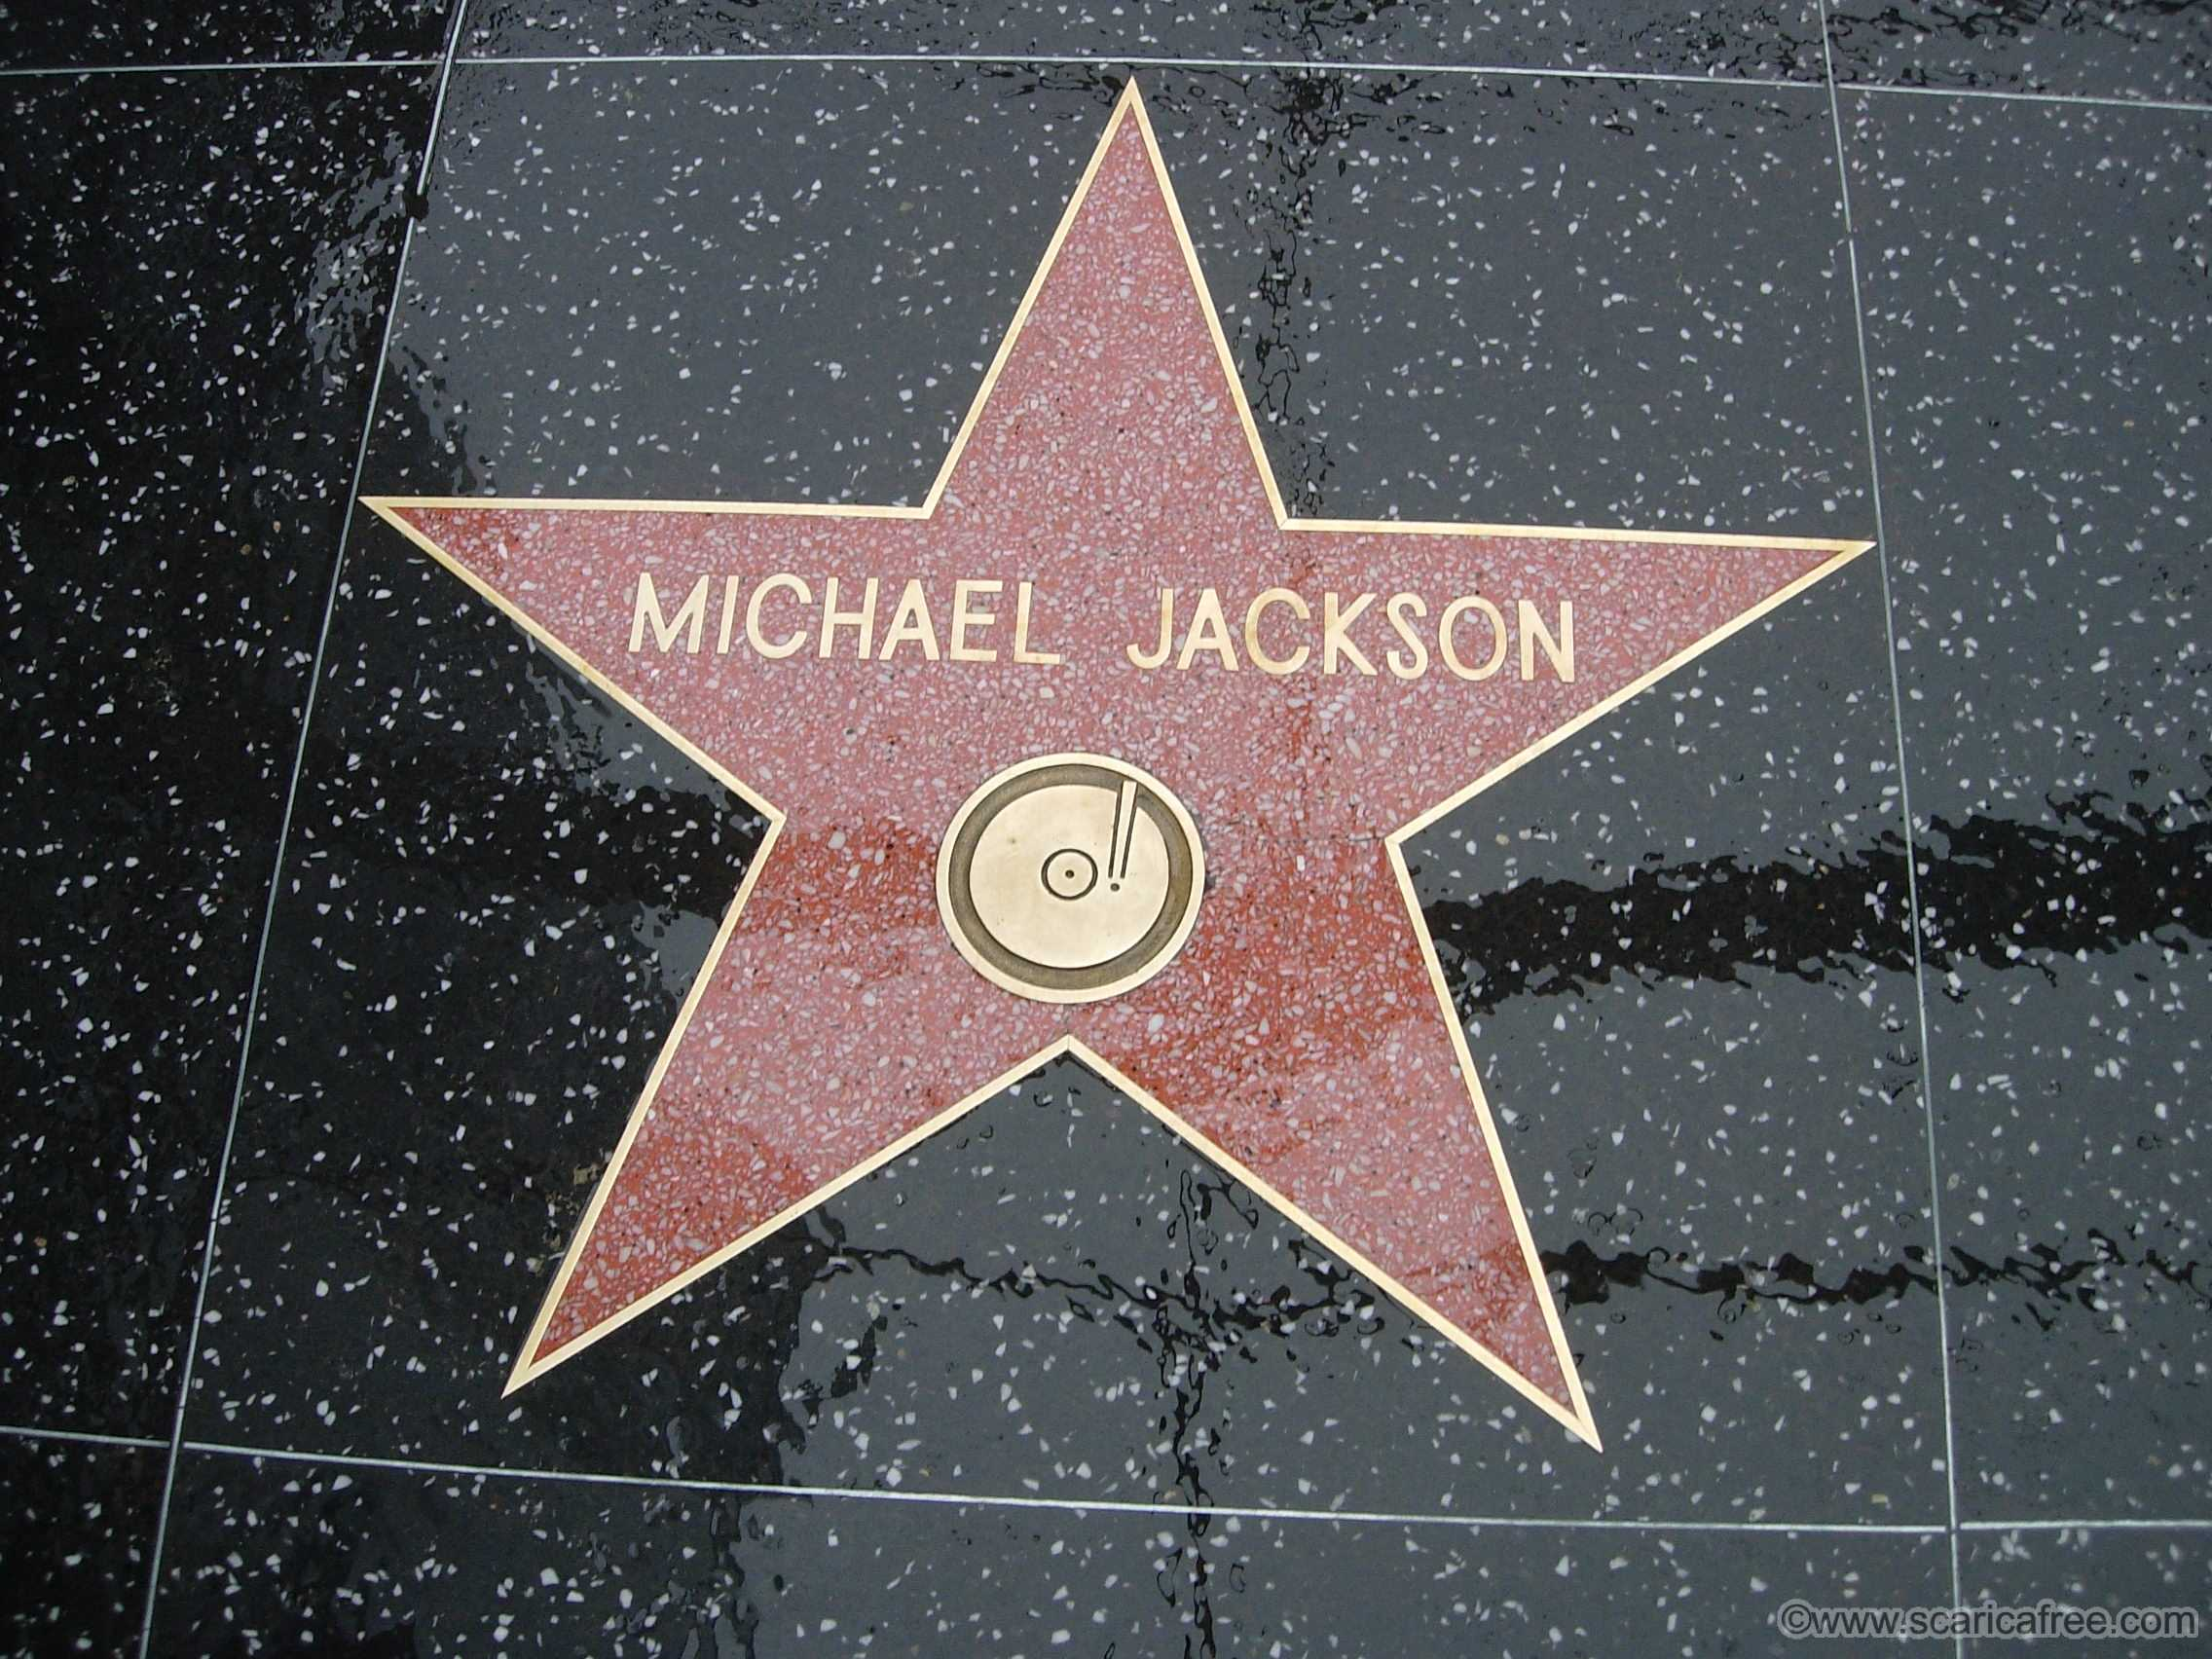 Michael's stella, star On The Hollywood Walk Of Fame